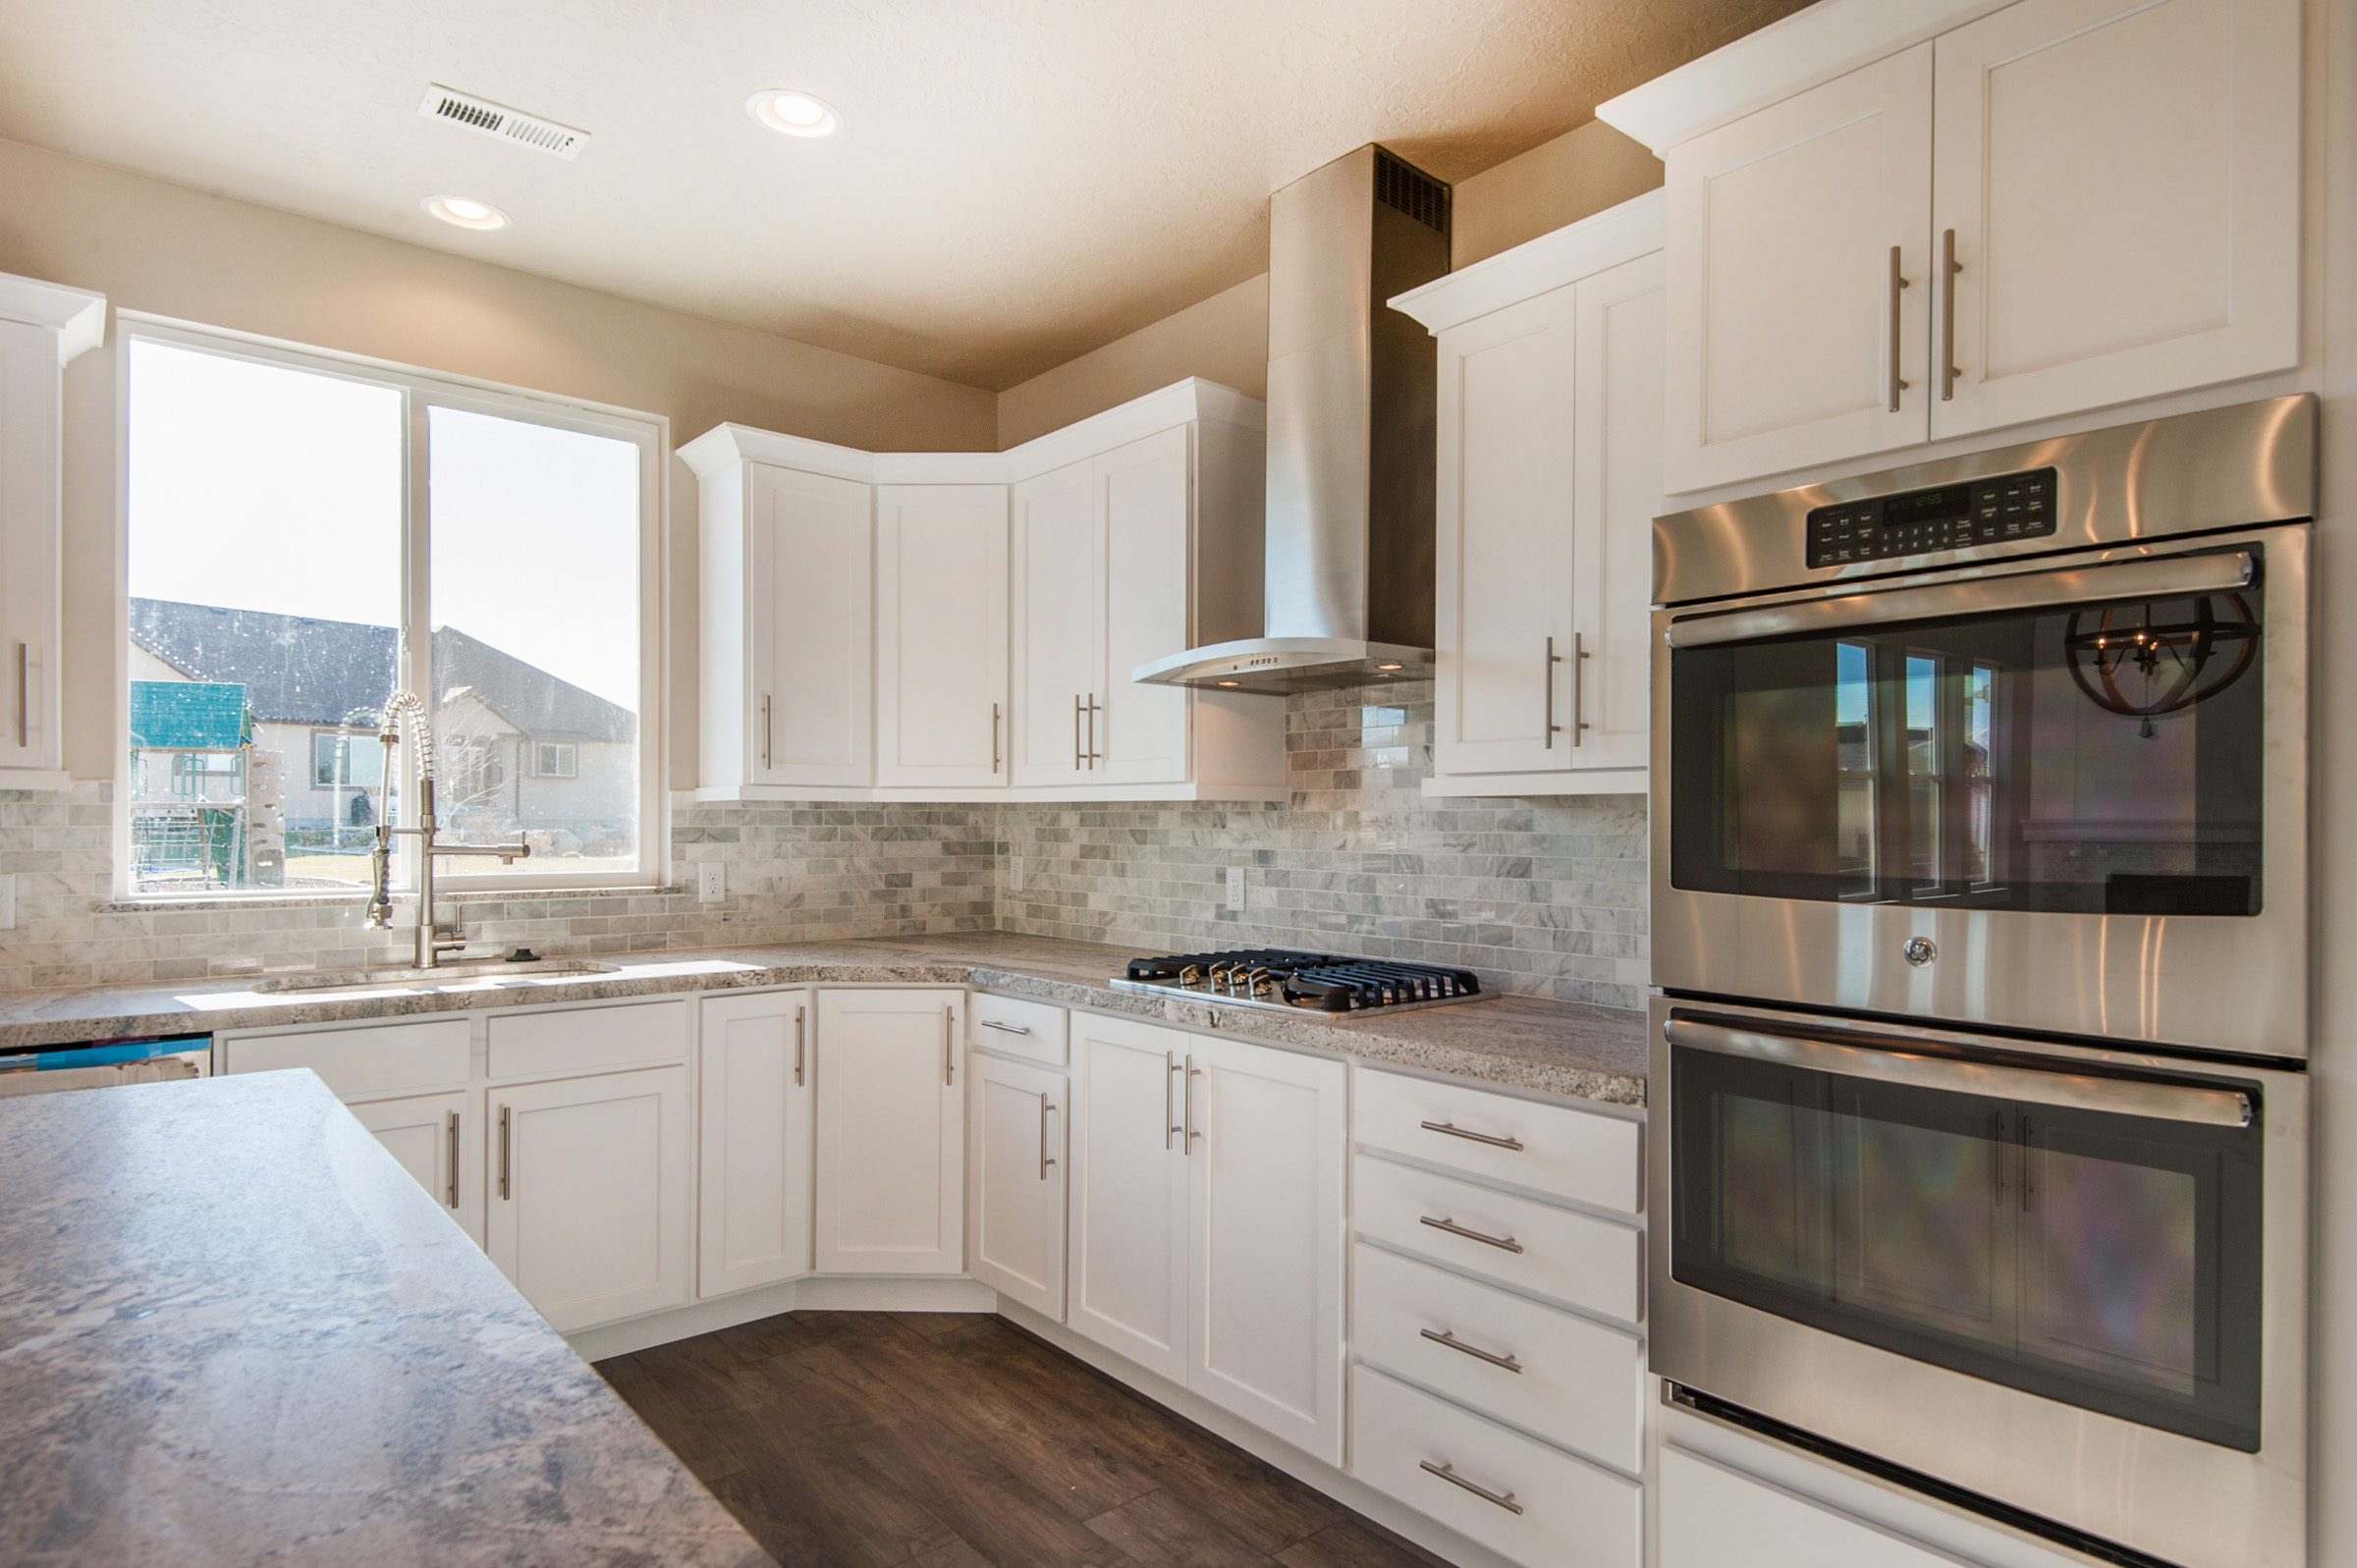 Alpine White Granite The Extended Alpine In Gray – South Valley Proper